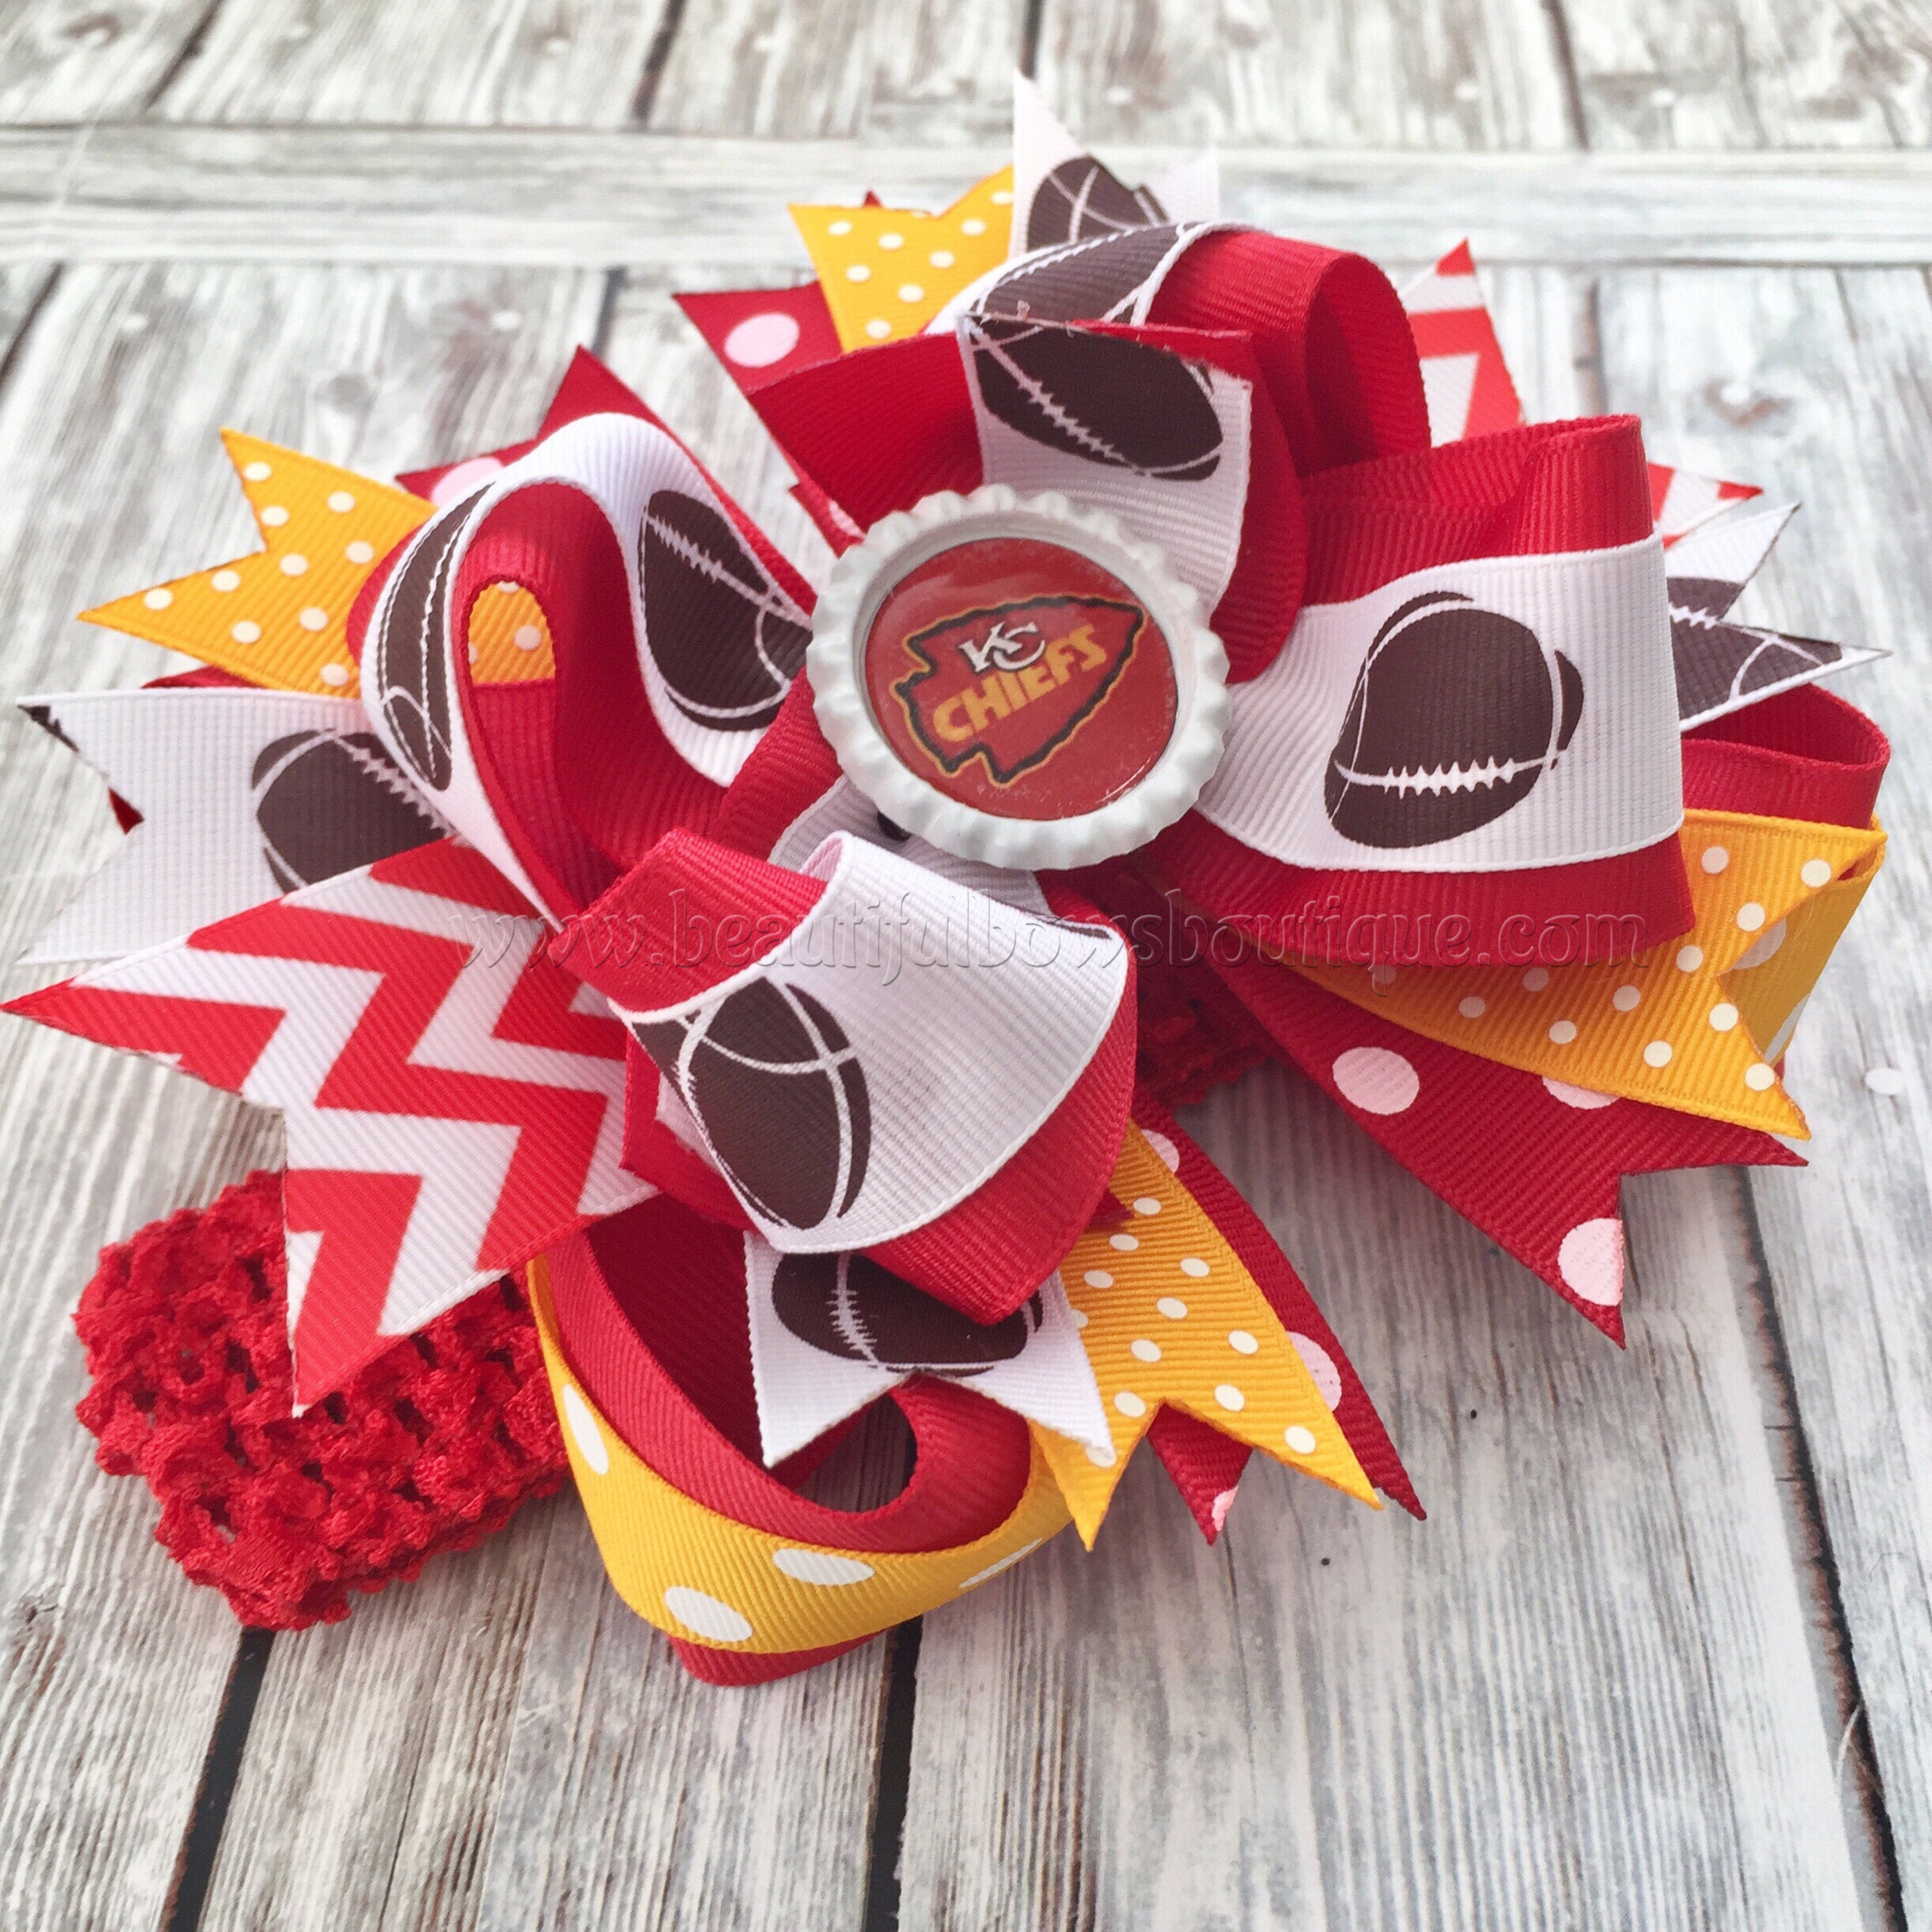 save off f5756 3f3af Kansas City Chiefs Hair Bow or Headband,Chiefs Hair Bow,Kansas City Chiefs  Baby Girl,Baby Girl Headbands,Newborn Infant Headband,NFL Bows